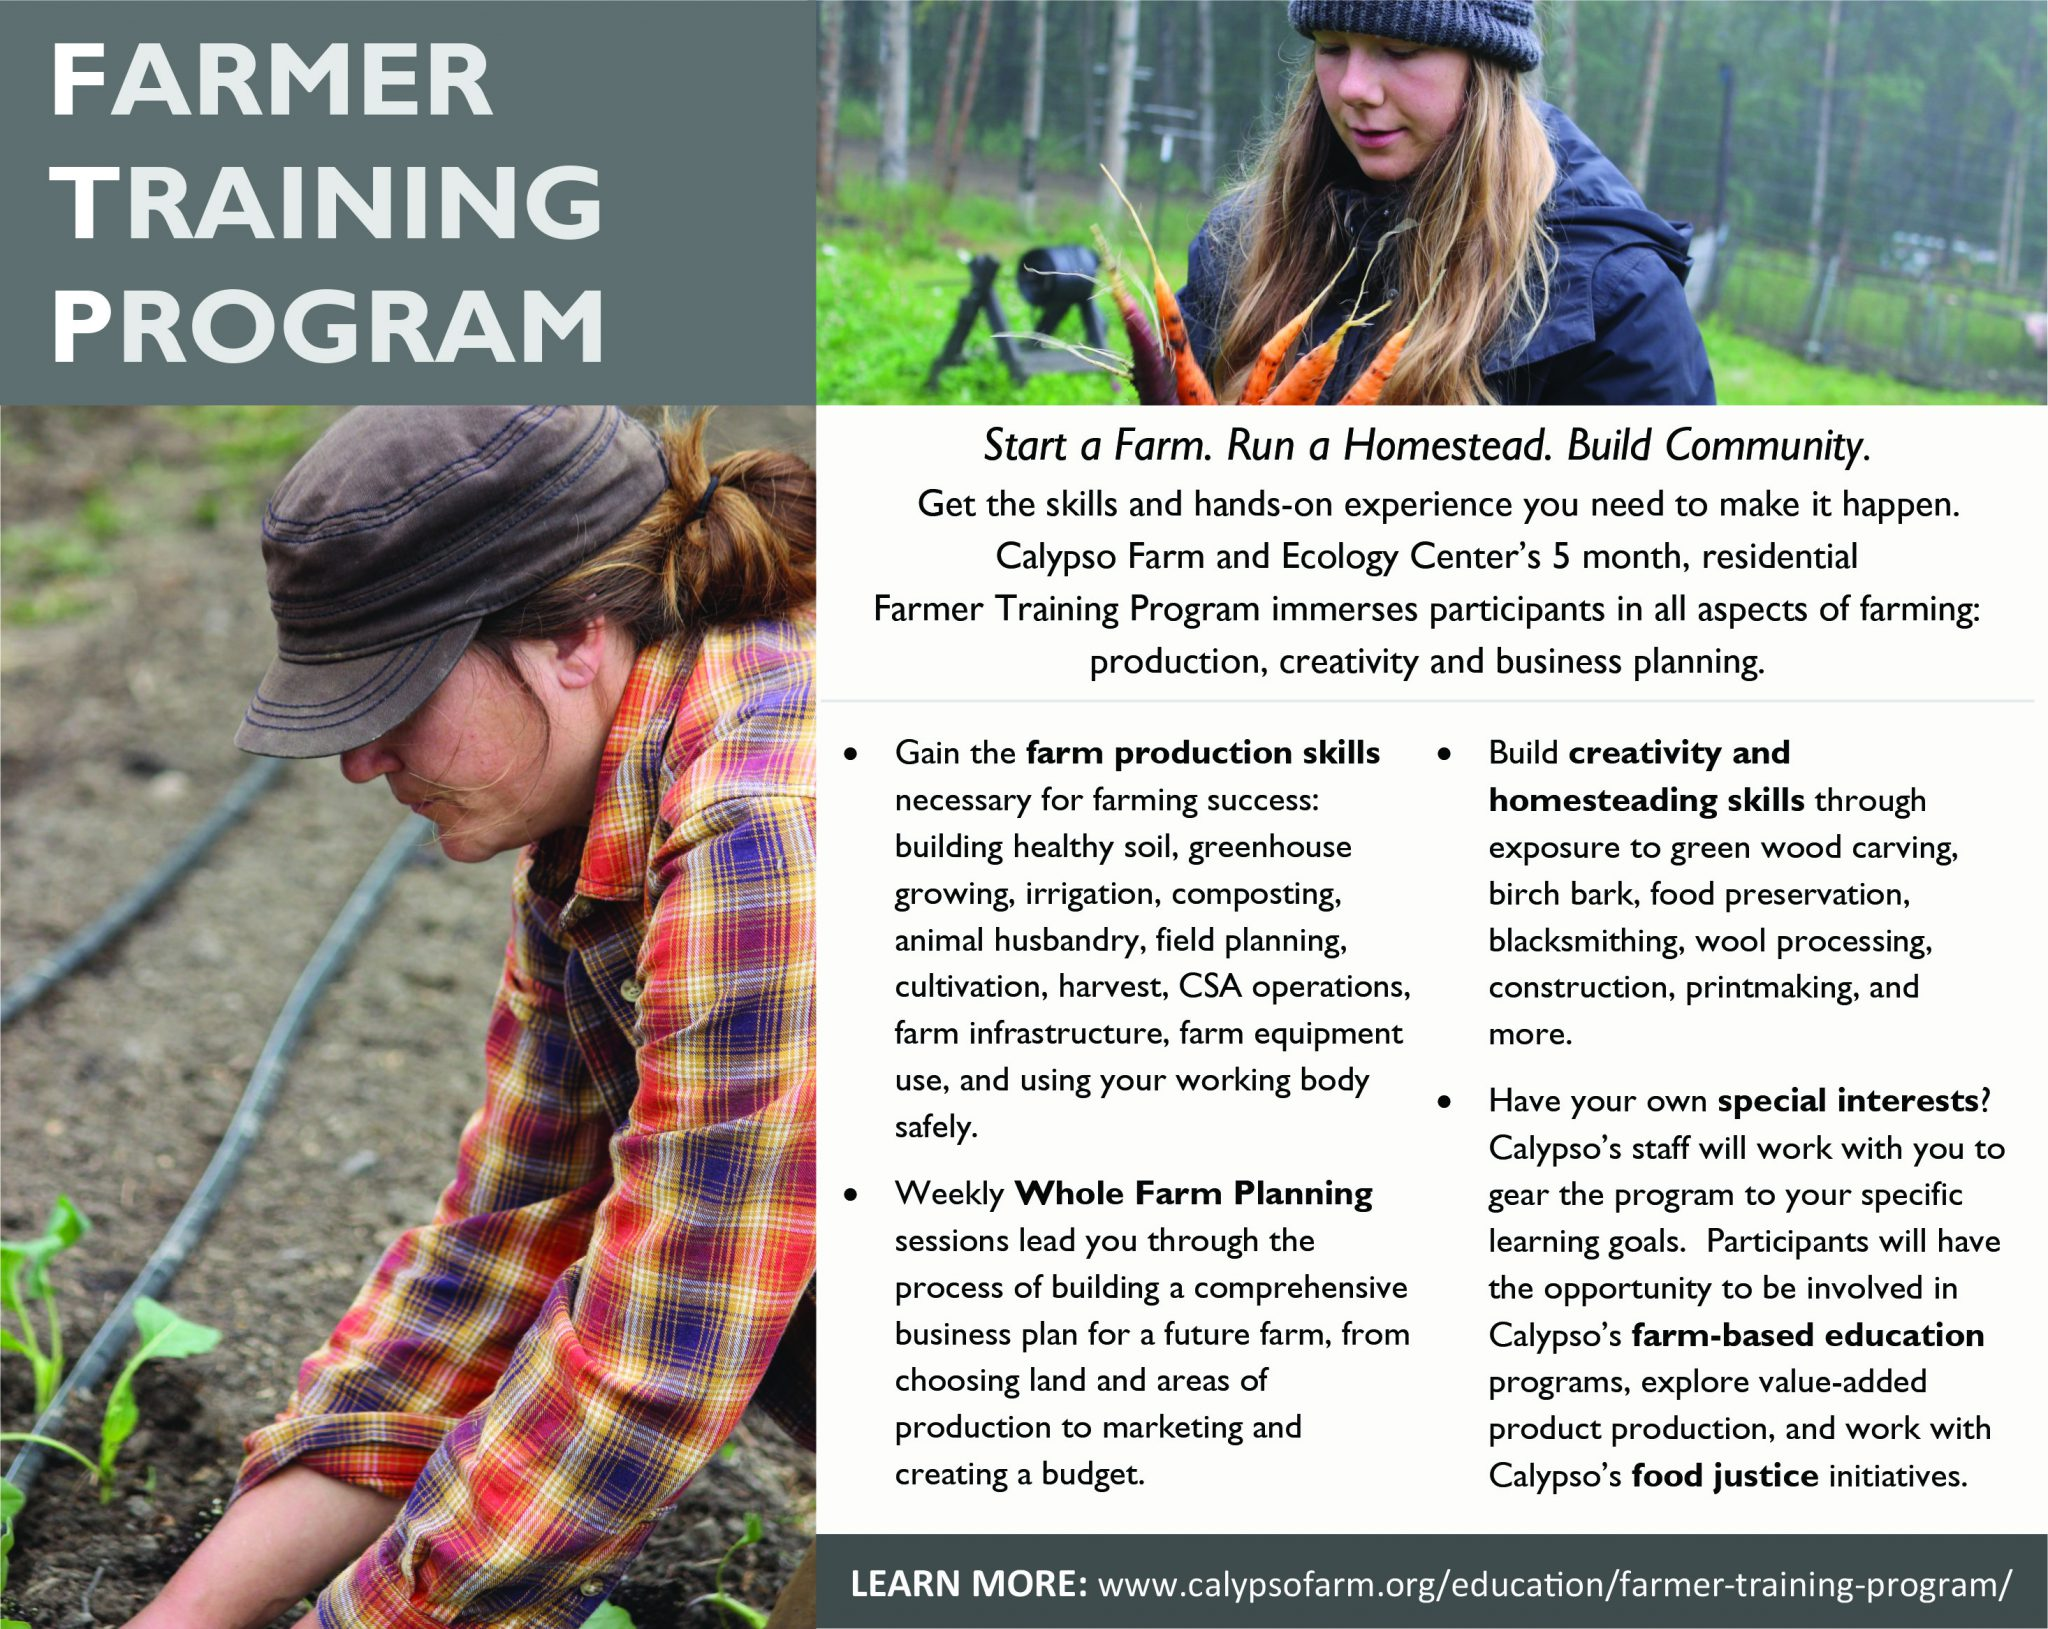 2018 Farmer Training Program Flyer.jpg